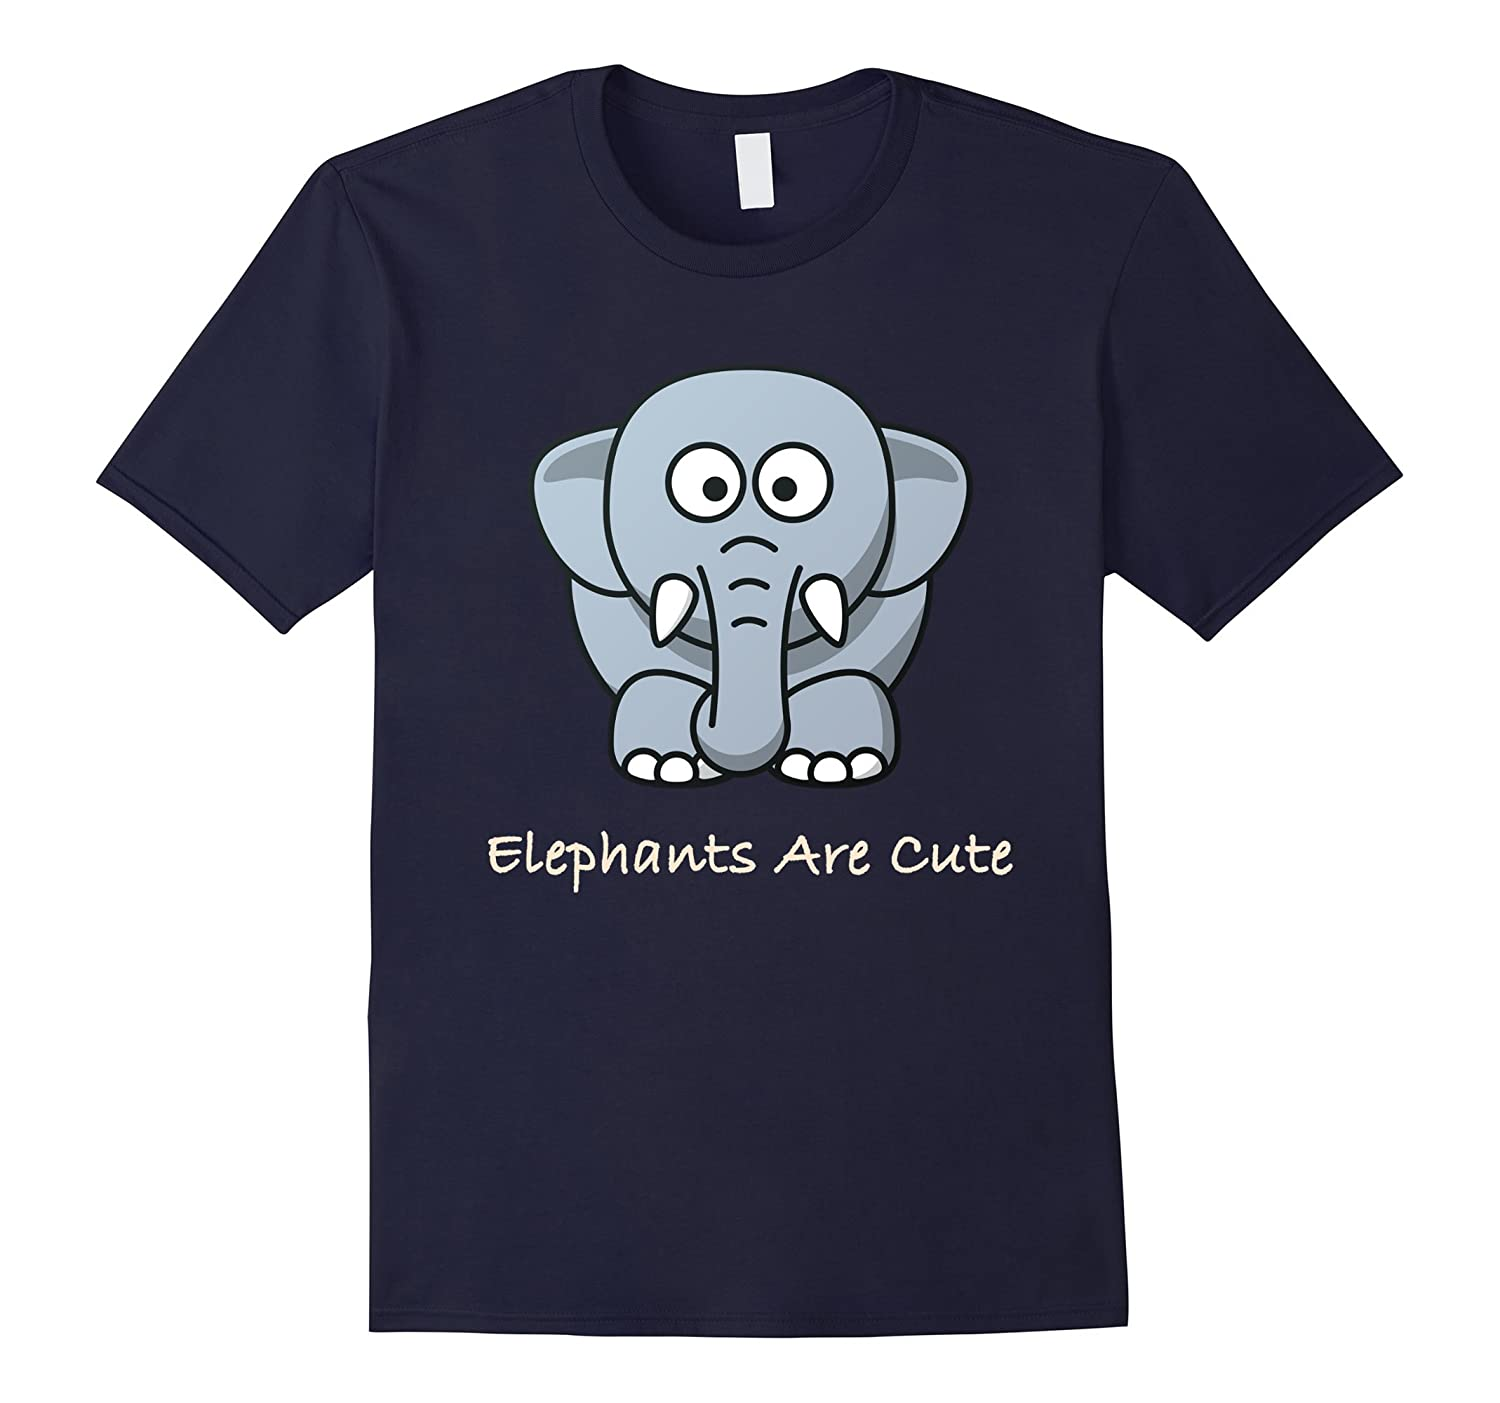 World Elephant Day T-shirt Elephants Are Cute: Save Wildlife-Art